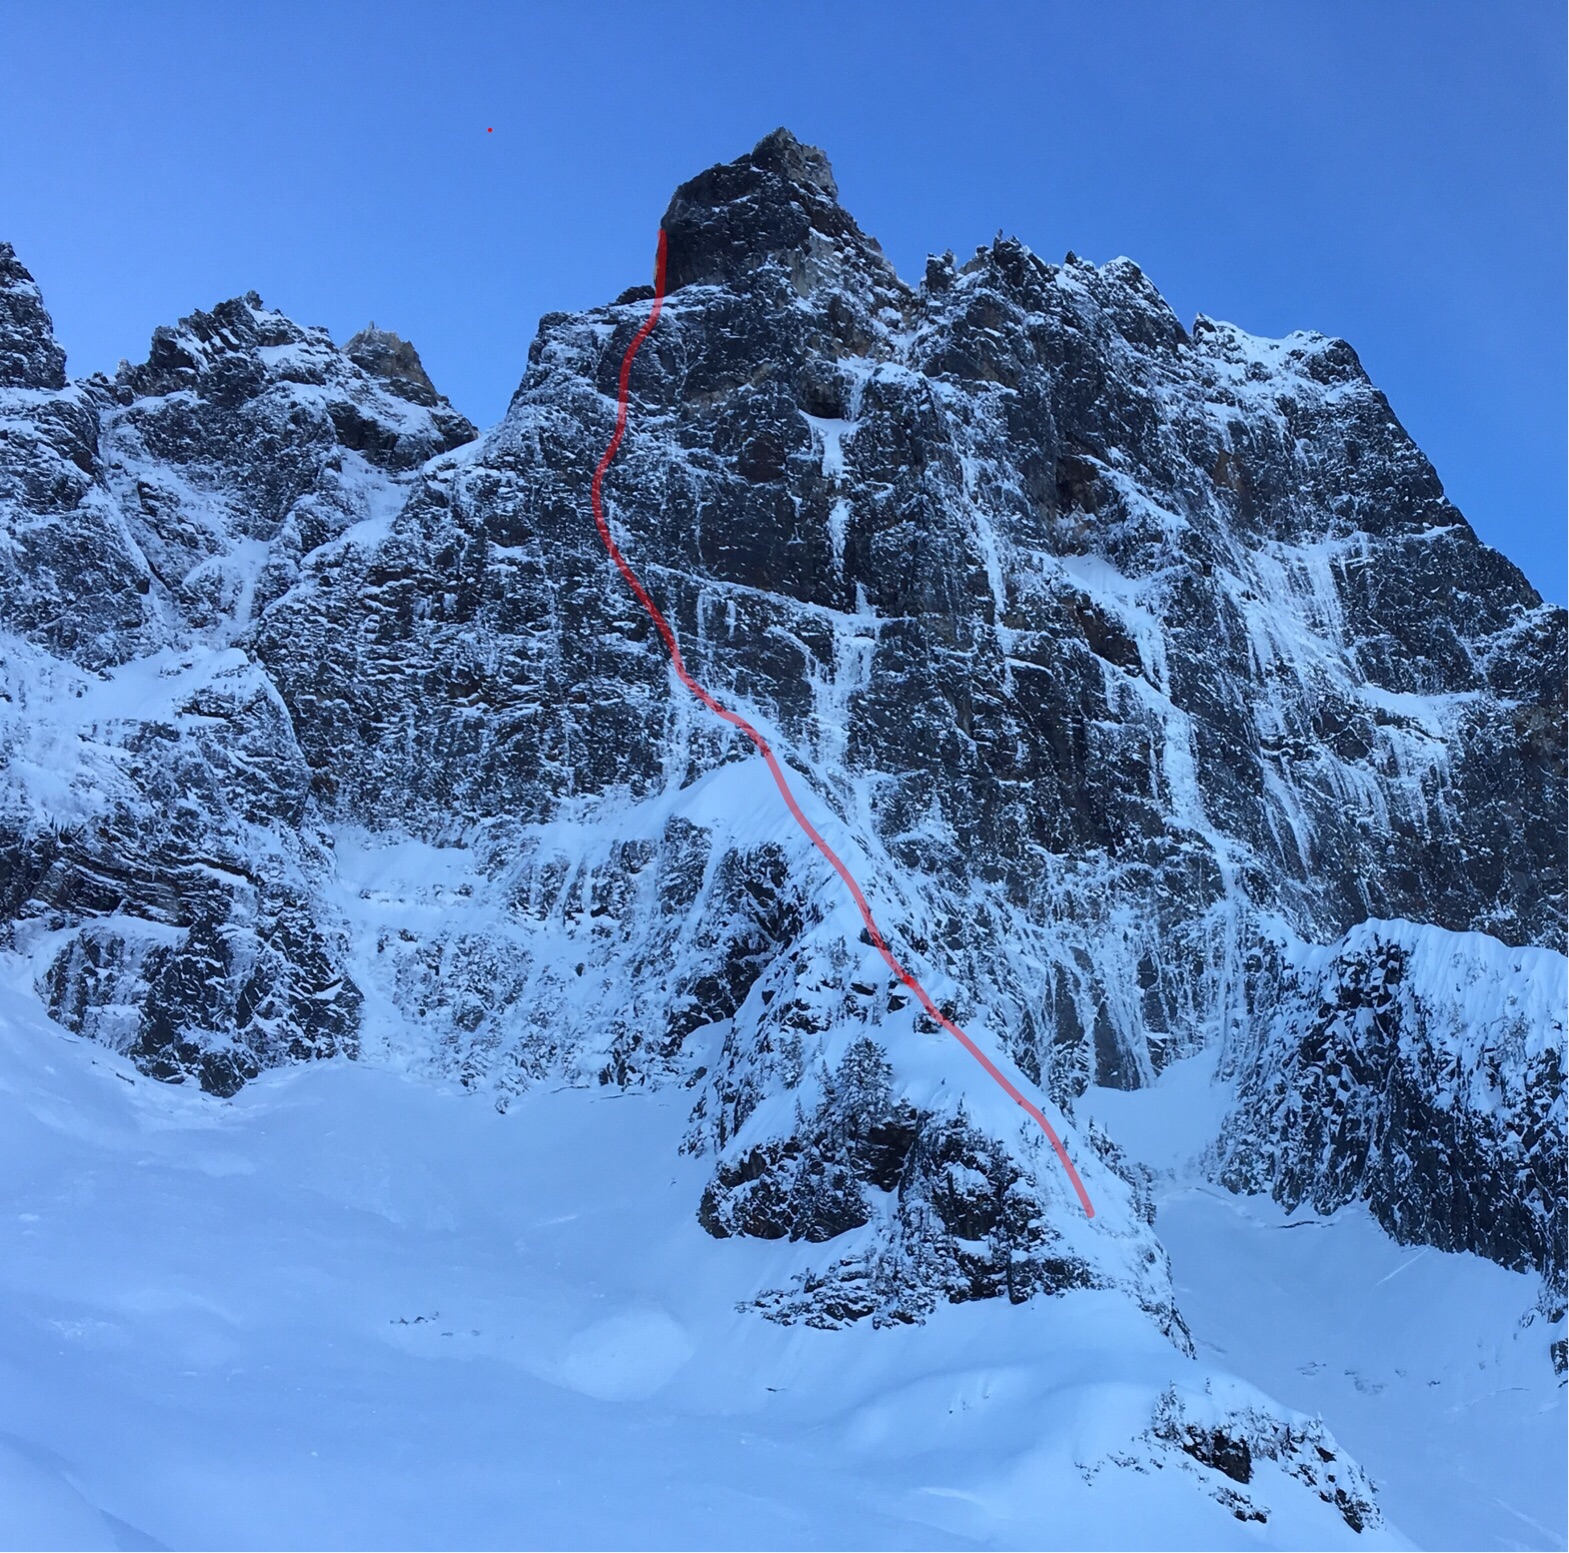 The red line shows the route taken by Marc-Andre Leclerc and Tom Livingstone on January 3 for the first winter ascent of the Navigator Wall on Canada's Mt. Slesse. They estimated the difficulties to be M7+ R or Scottish VIII or IV, according to Livingstone. [Photo] Marc-Andre Leclerc